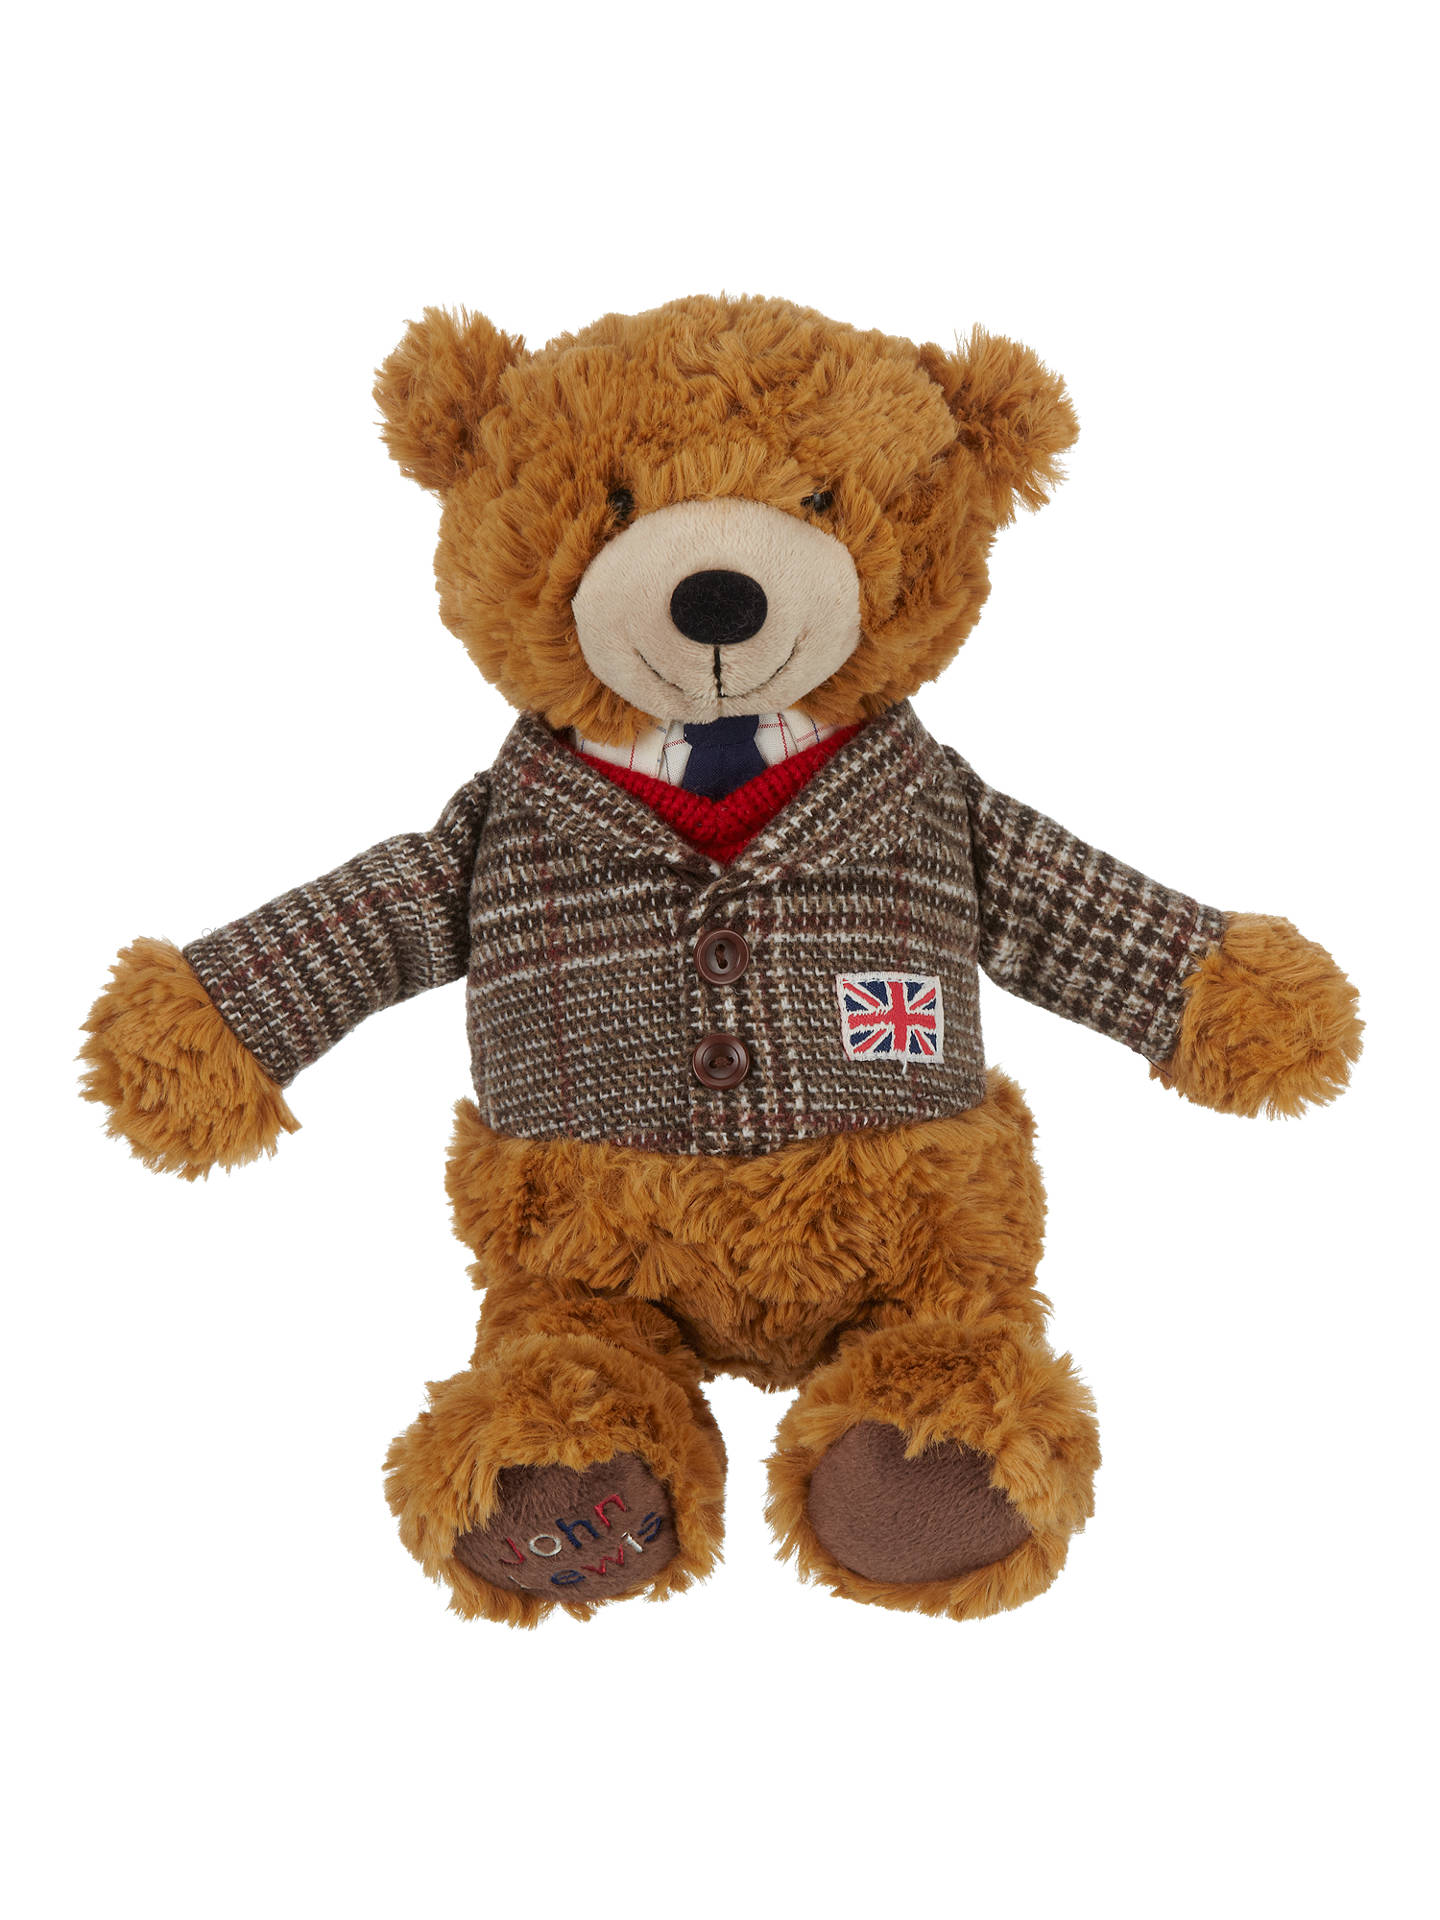 Buy John Lewis & Partners Tourism Country Lewis Teddy Bear Soft Toy Online at johnlewis.com